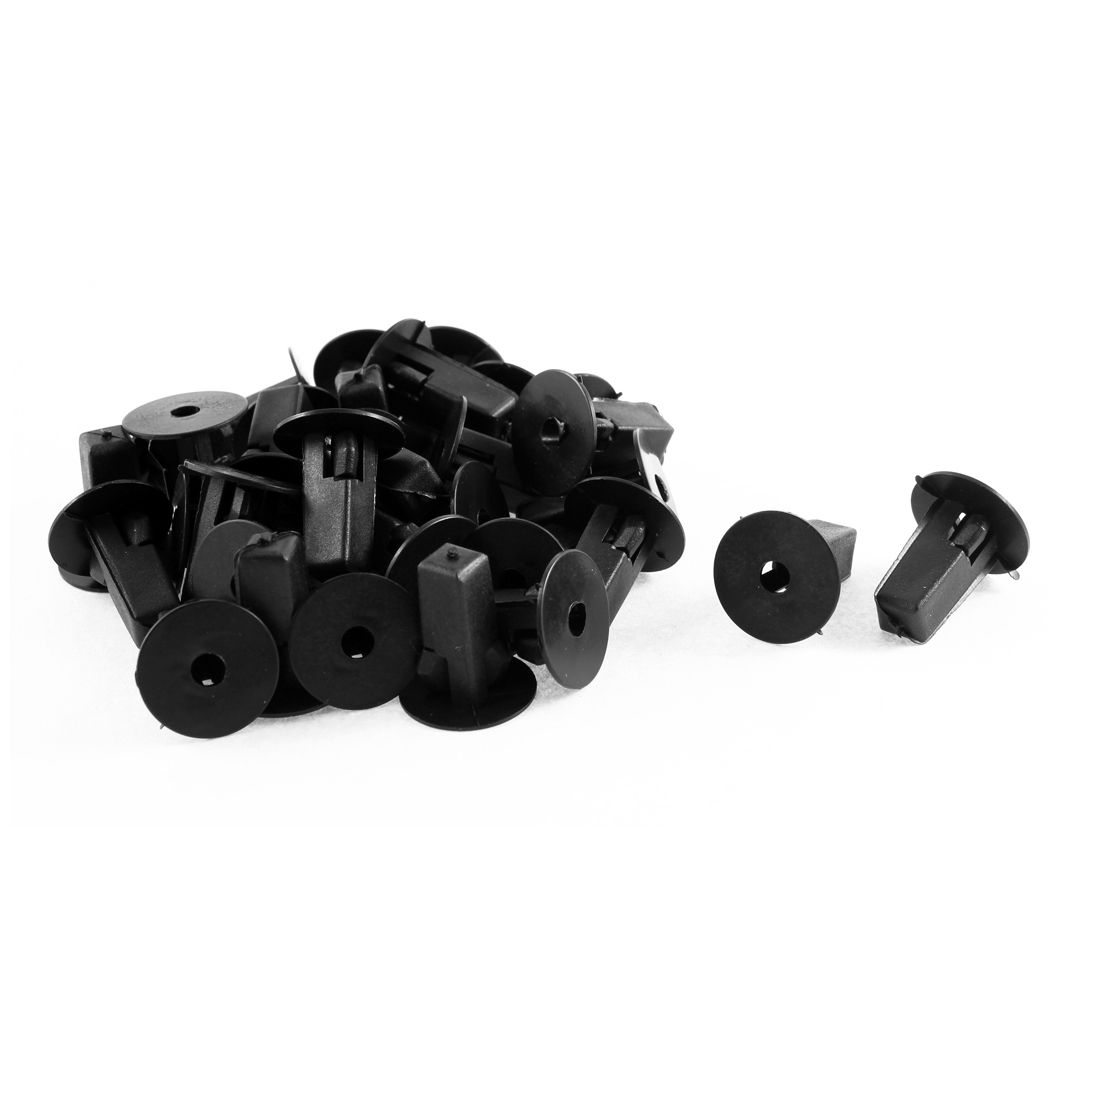 Black Plastic Rivet Trim Engine Panel Fastener Clips 32 Pcs for Toyota